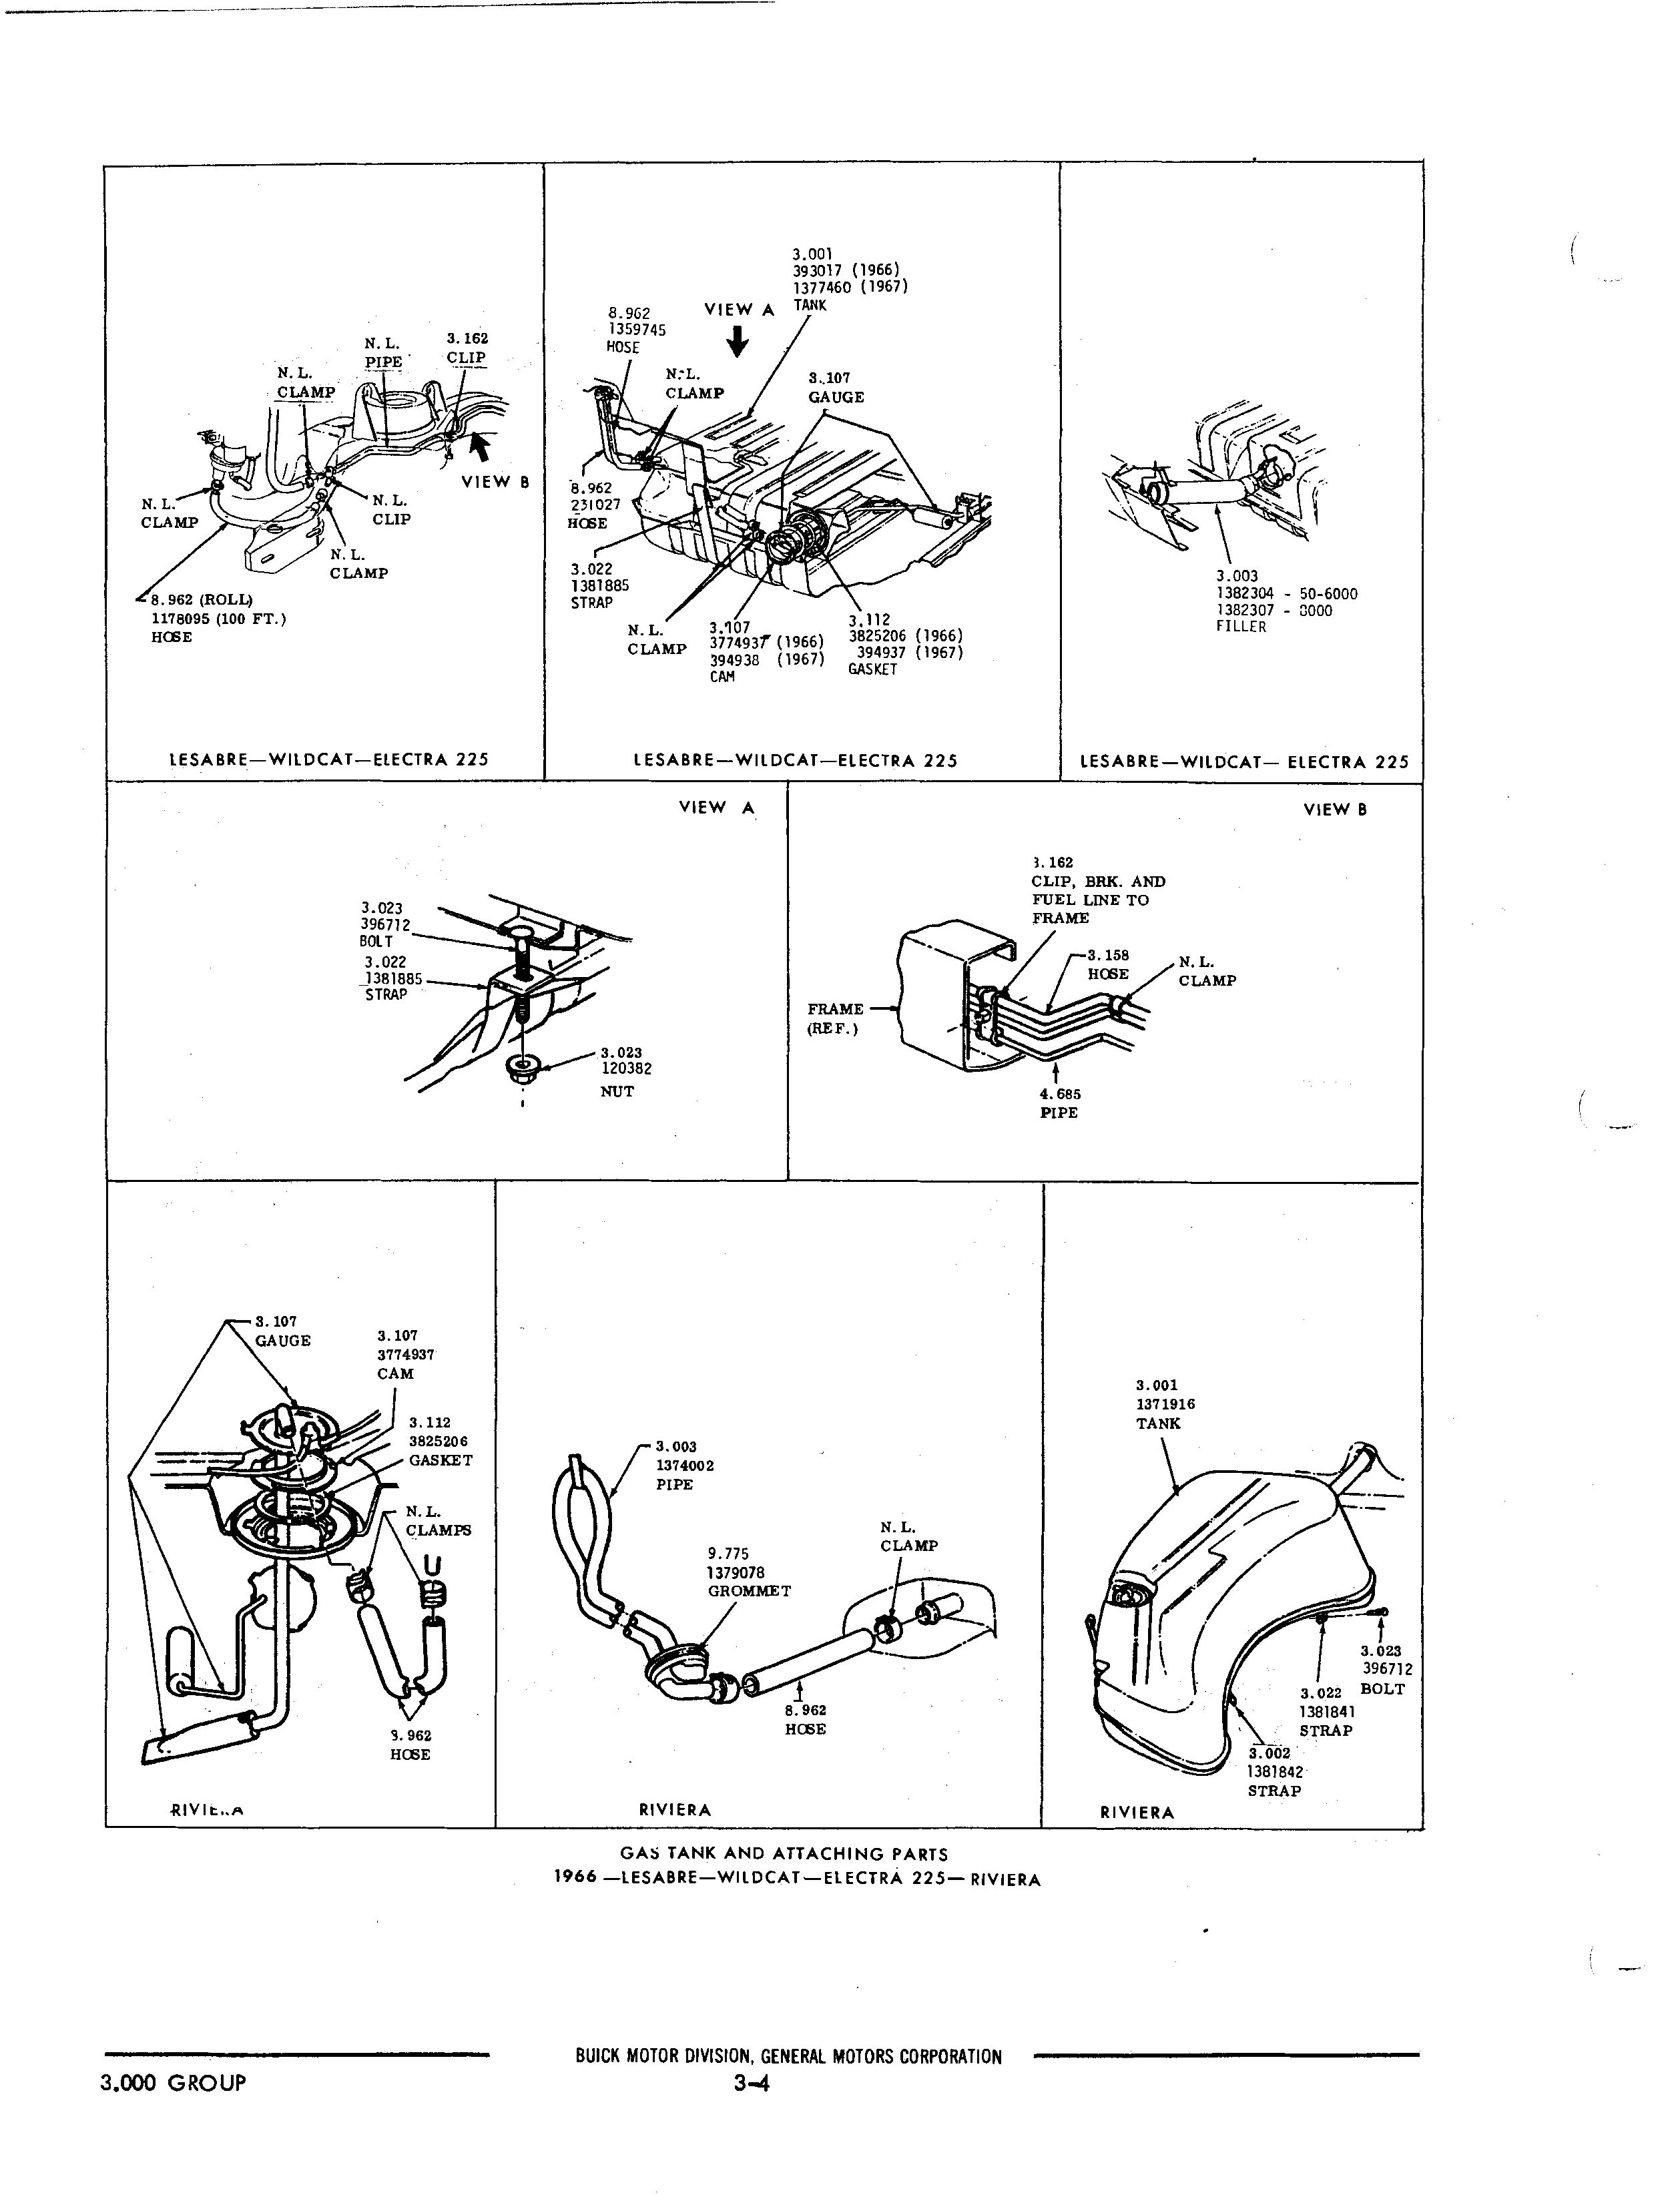 Automobile Art In Design Patents likewise Ps63138 in addition Gm Column Bracket 84029550 also 87435 also 1941 Dodge Truck Wiring Diagram. on 1939 buick special